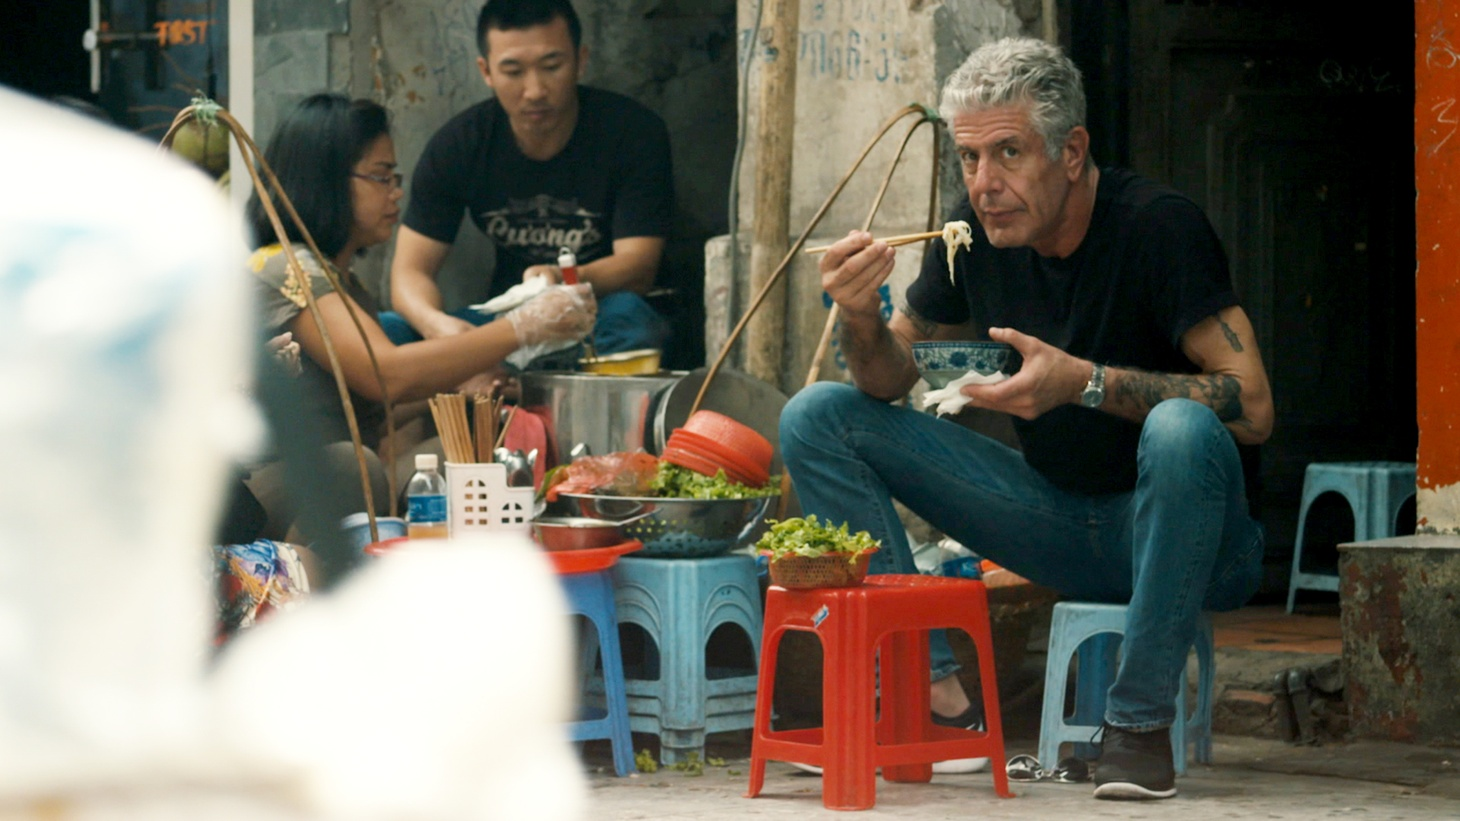 """""""The show was both exciting, but it disrupted the regimen that kept him in line,"""" says Morgan Neville of Anthony Bourdain."""